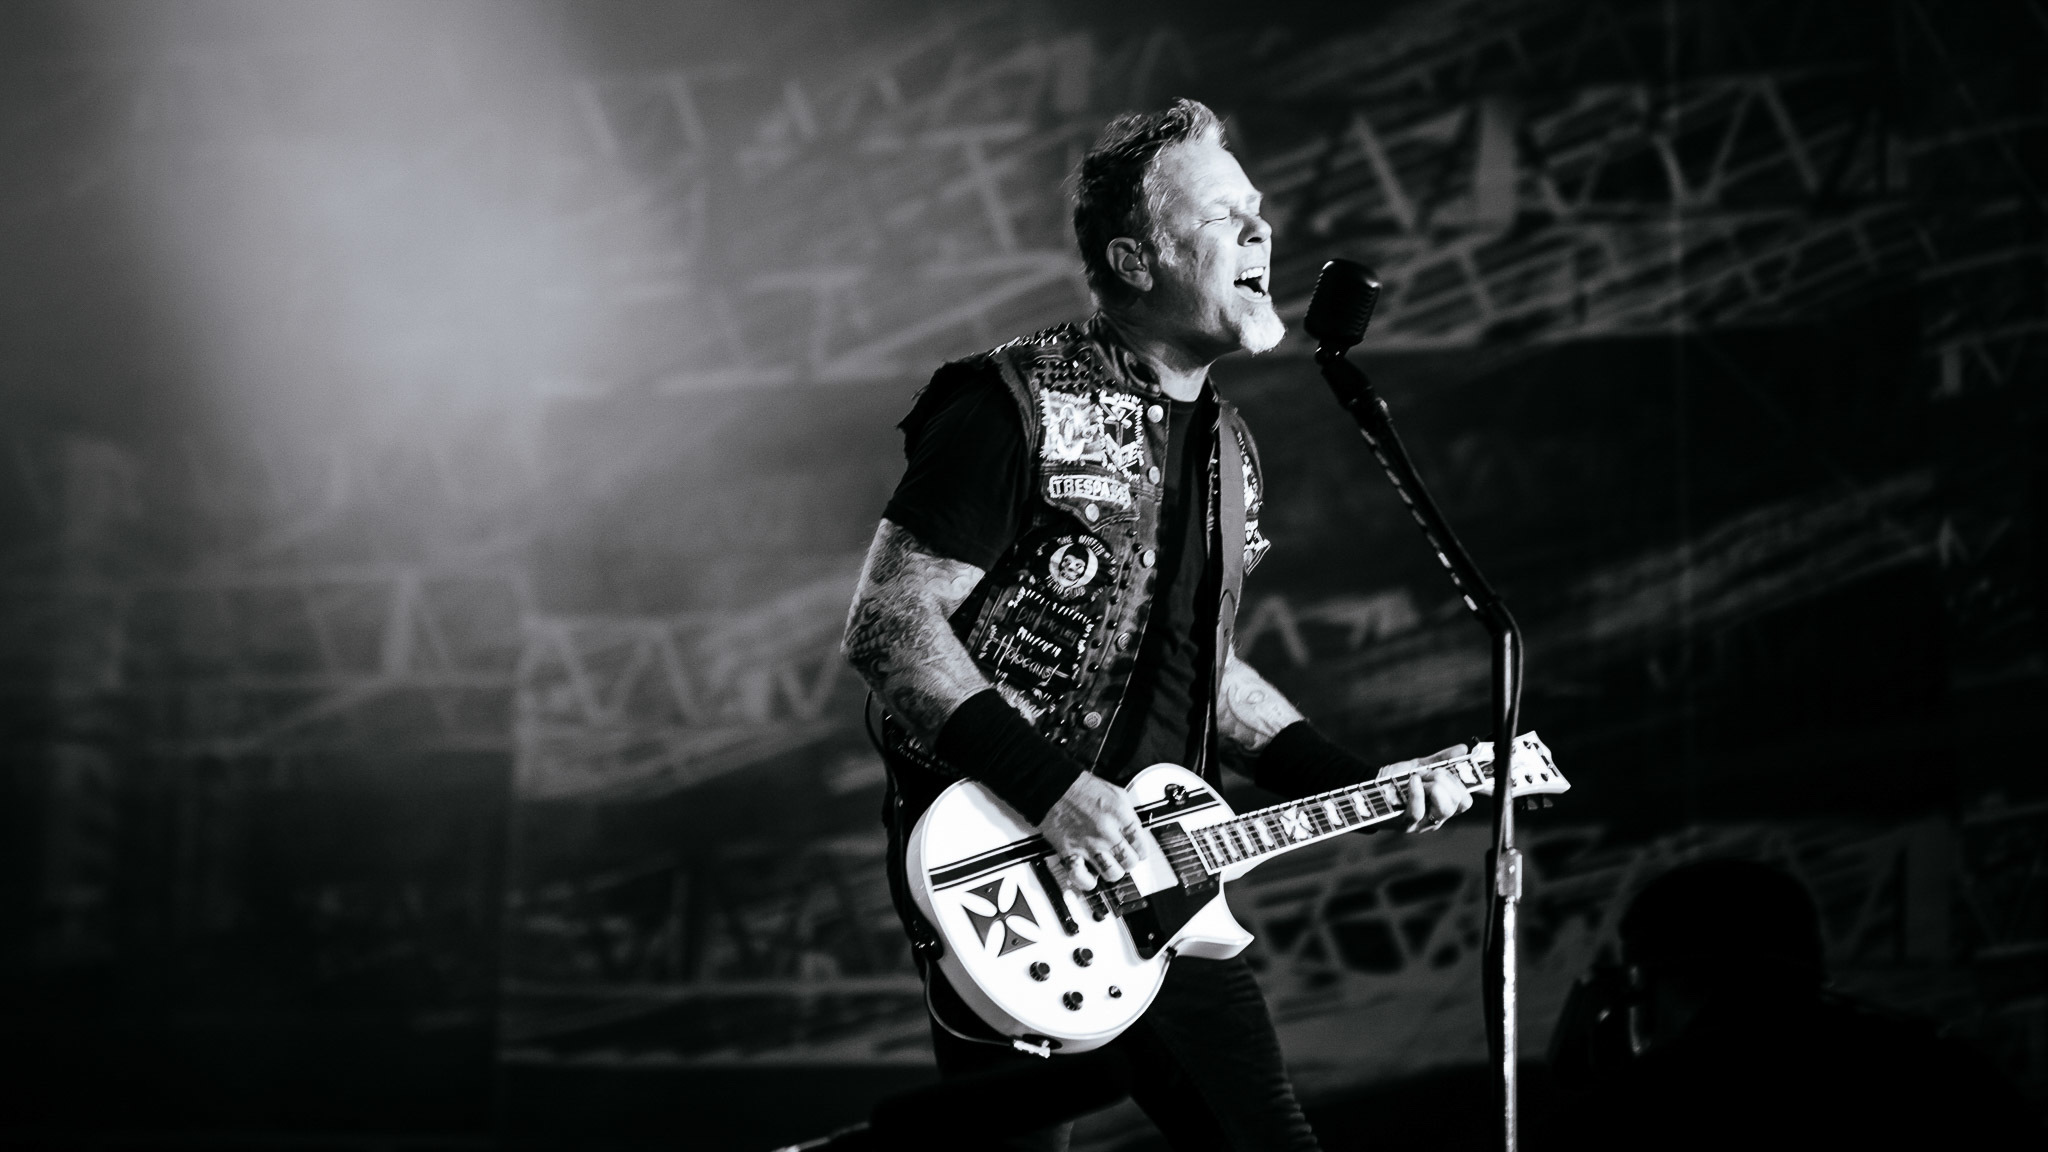 Metallica turned in a set in front of a crowd of thousands at Lollapalooza on August 1, 2015.